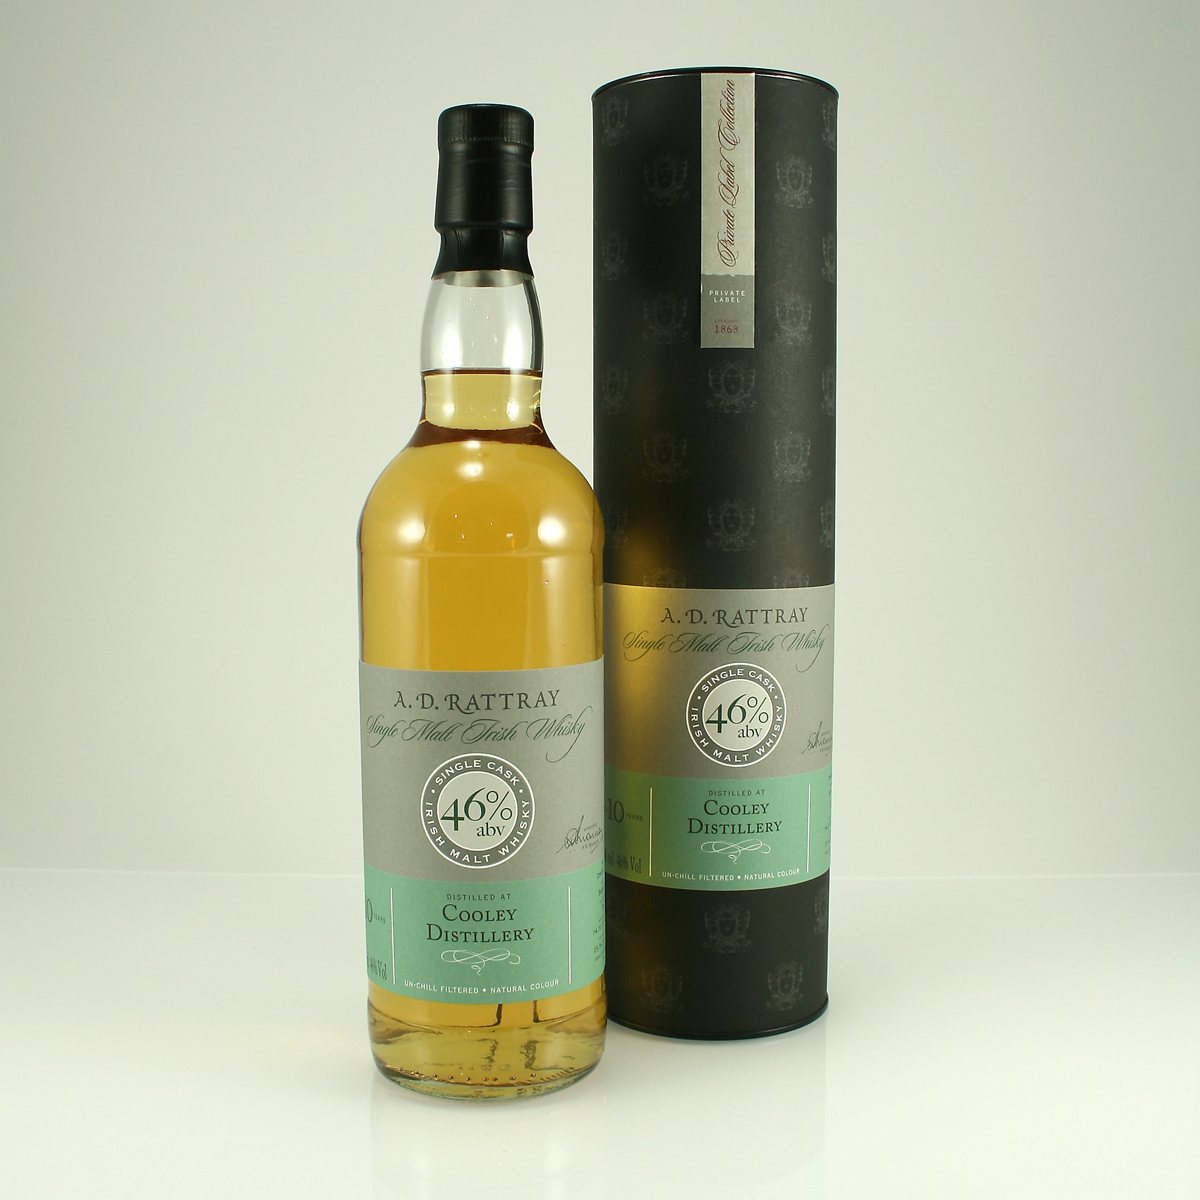 COOLEY 10 Y/O Irish Malt Whiskey 46% A.D. Rattray